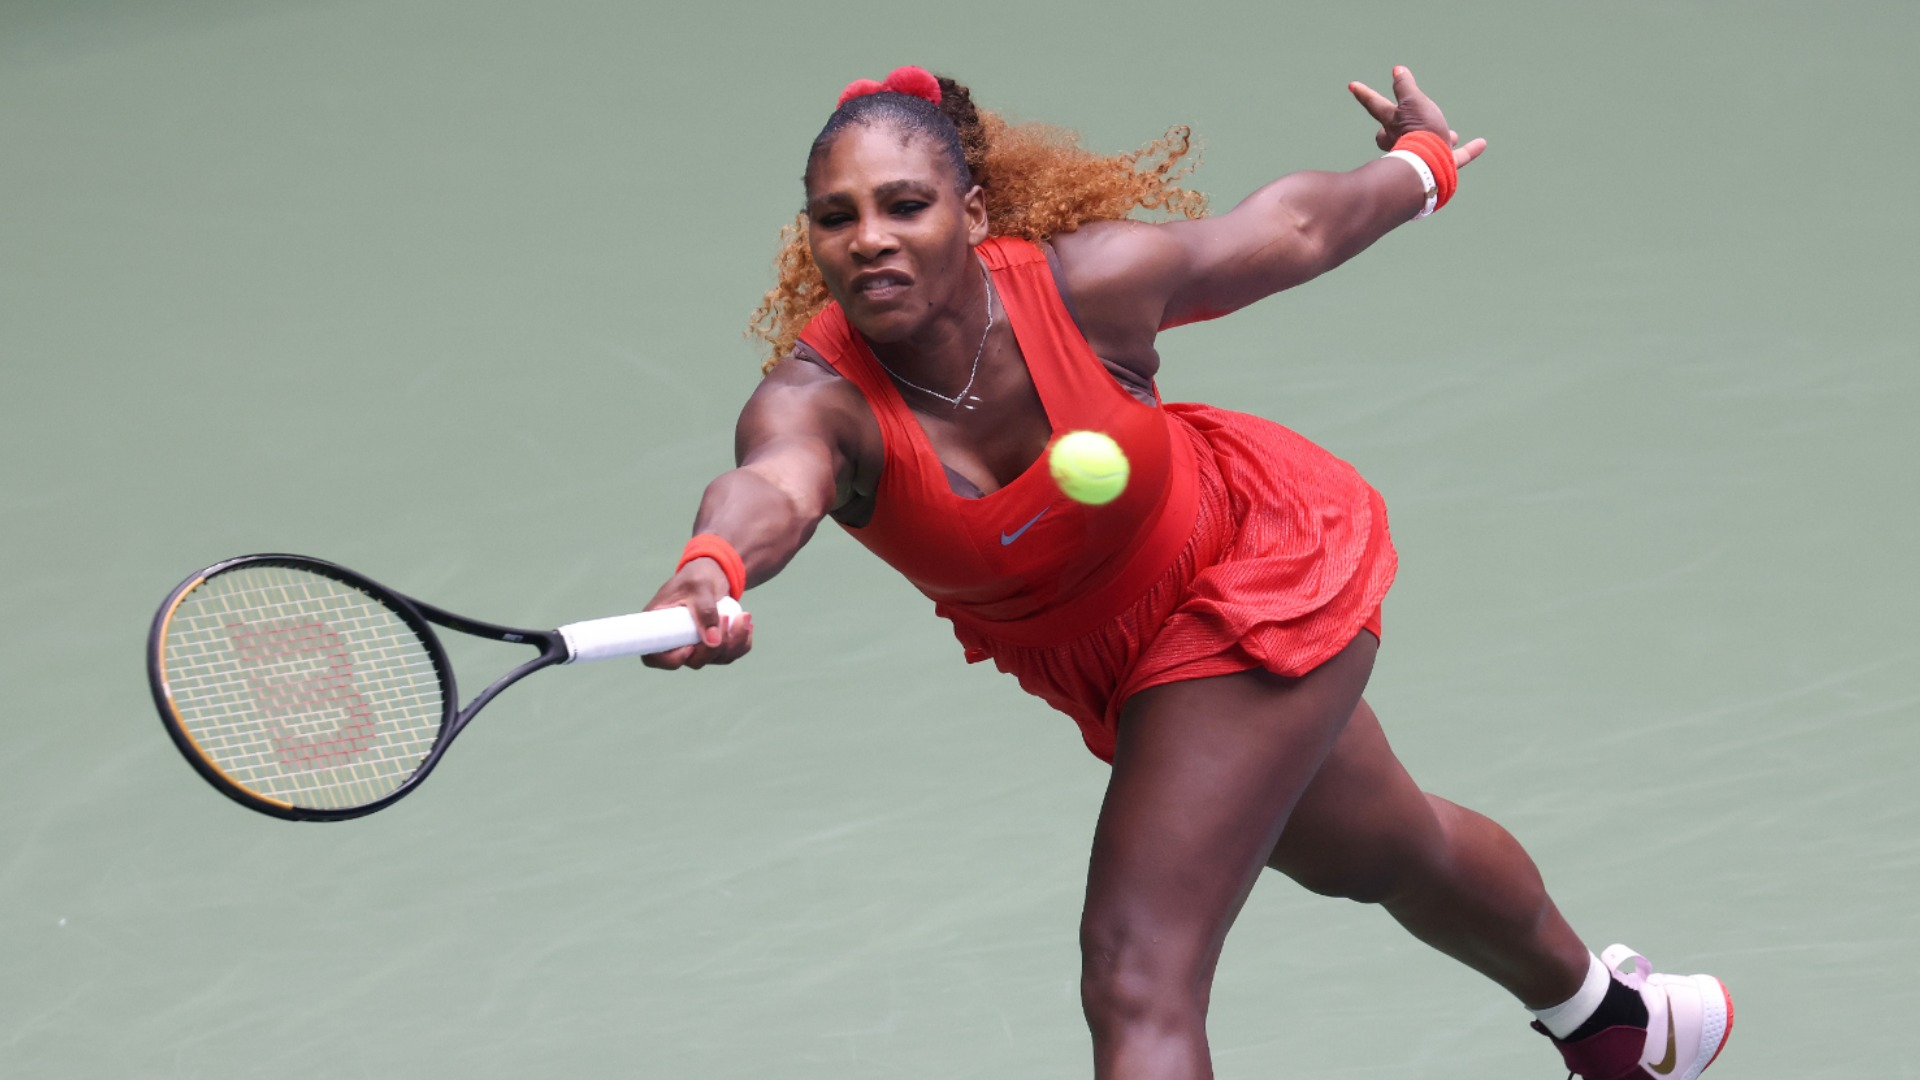 US Open 2020: Serena Williams rallies to halt Tsvetana Pironkova fairytale and reach semis 1